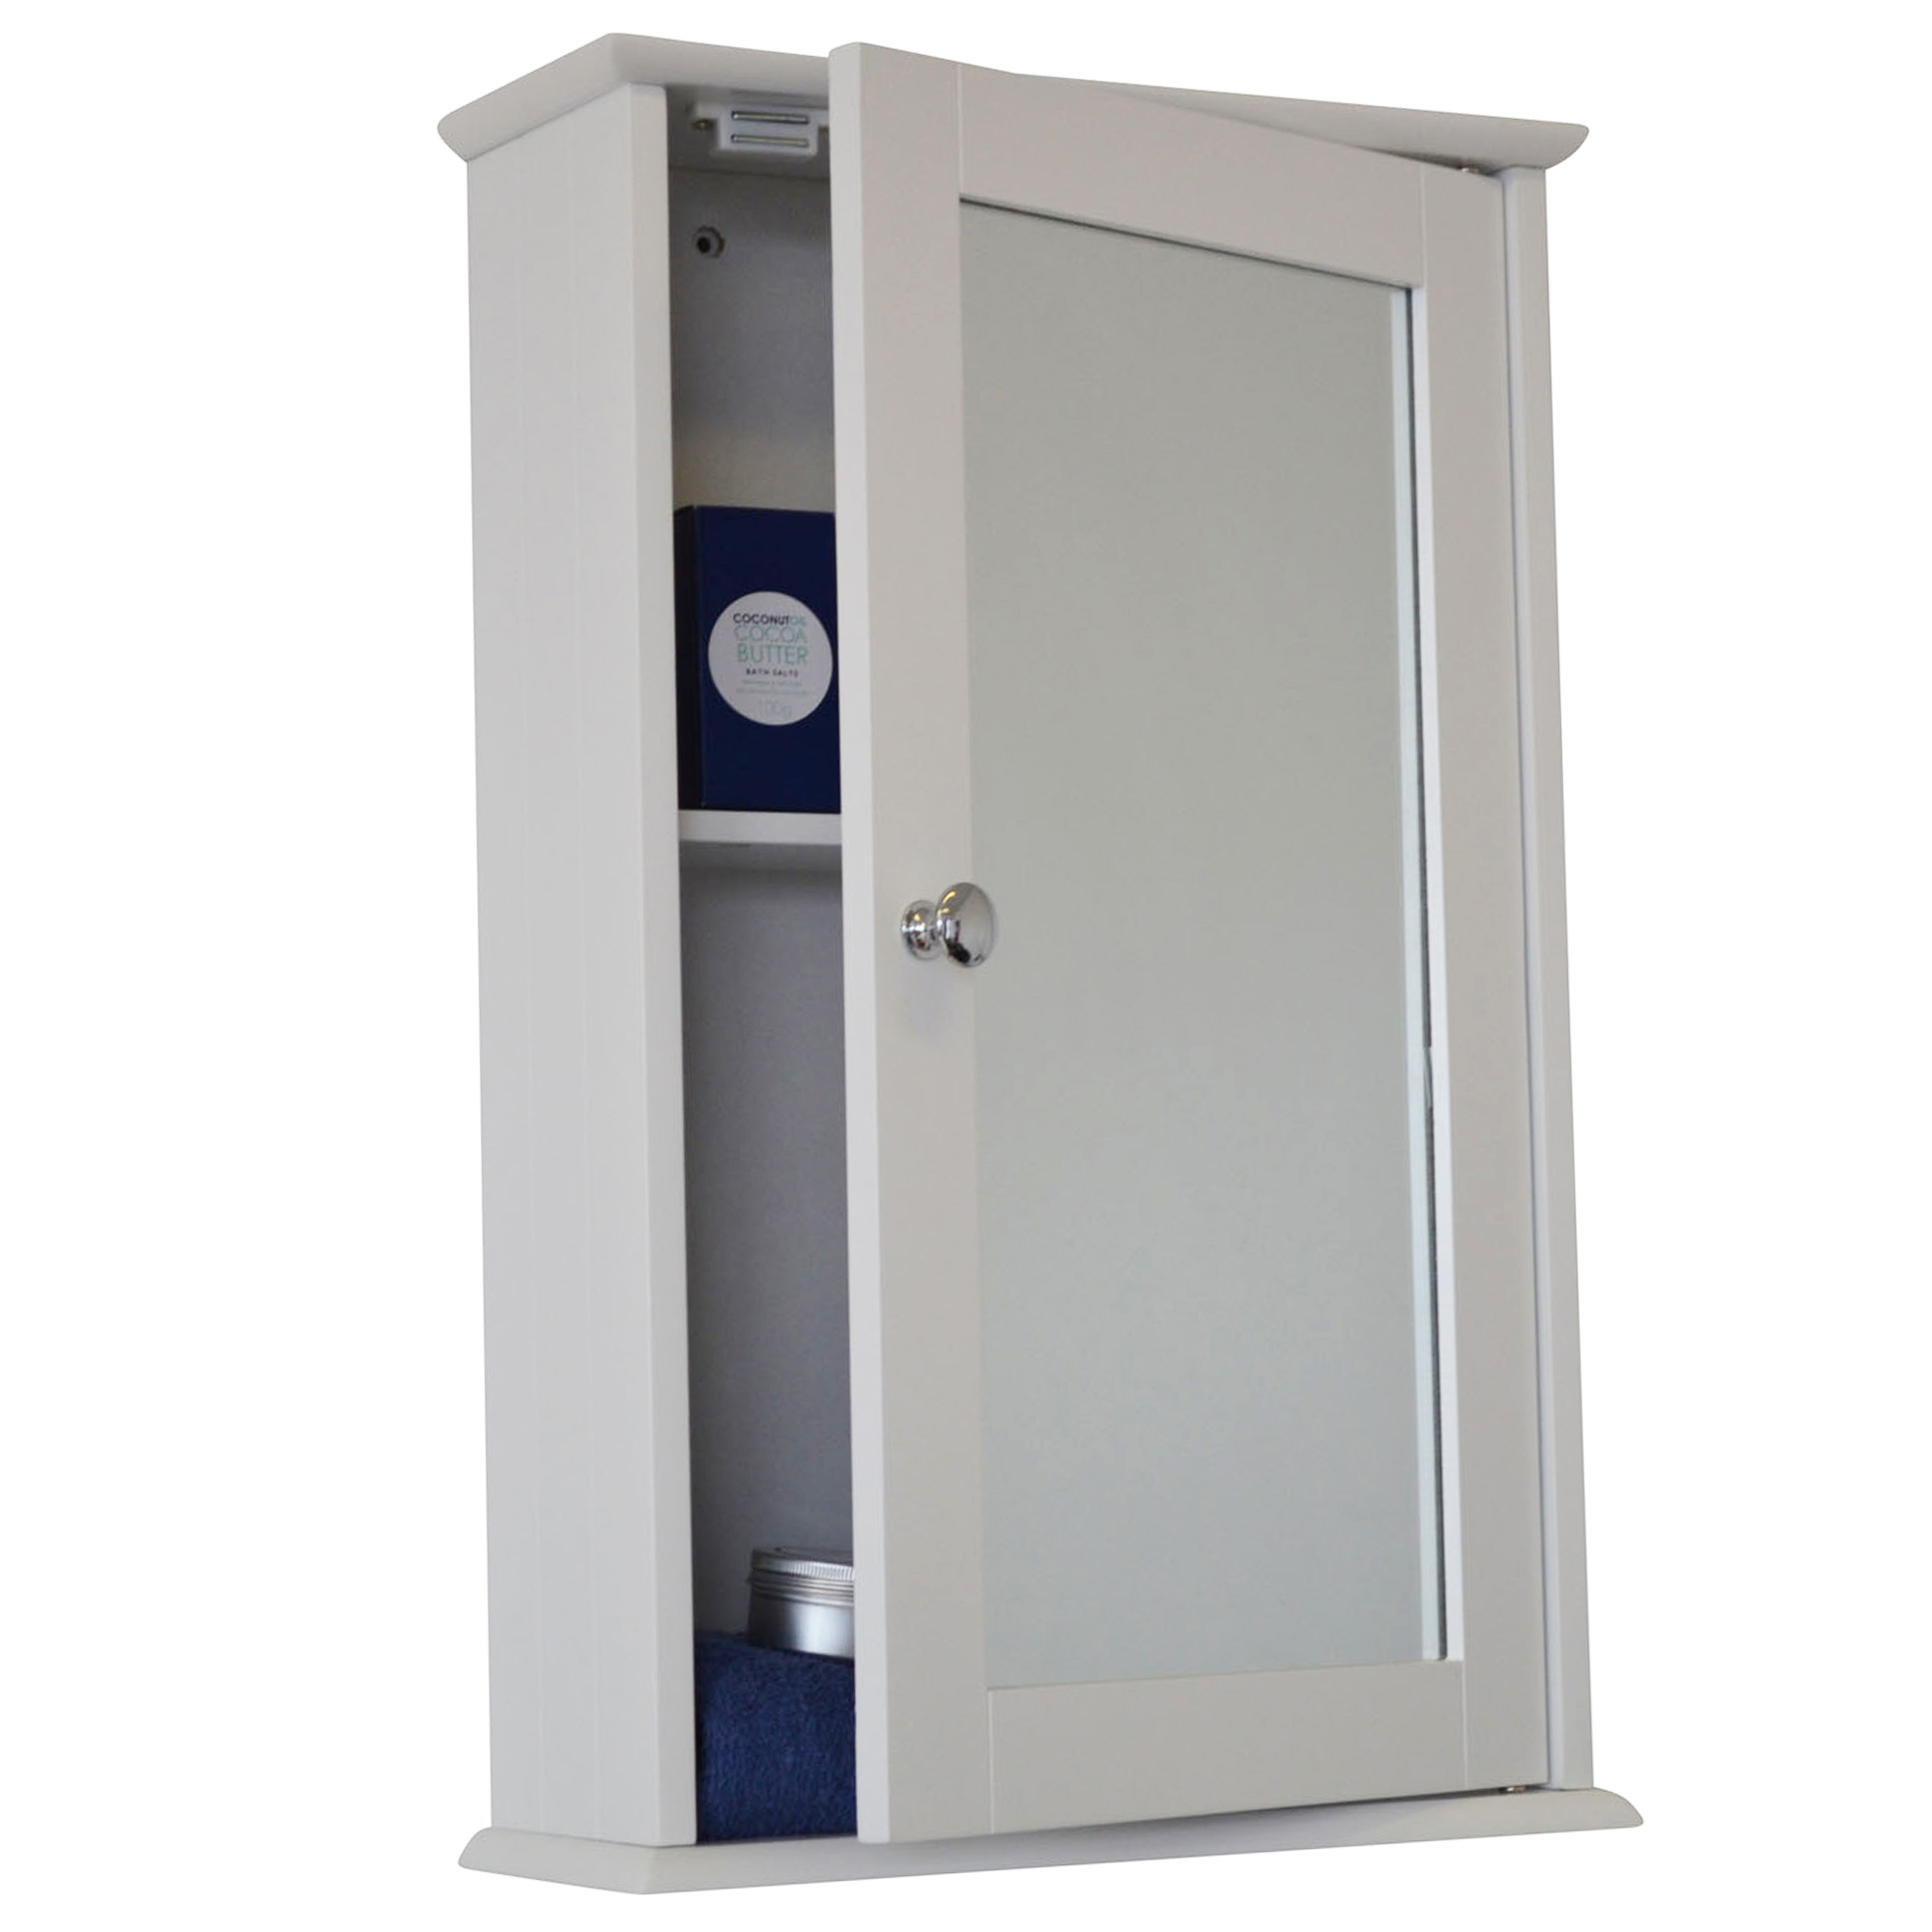 New odessa mirrored single door bathroom cabinet ebay for Bathroom cabinets ebay australia